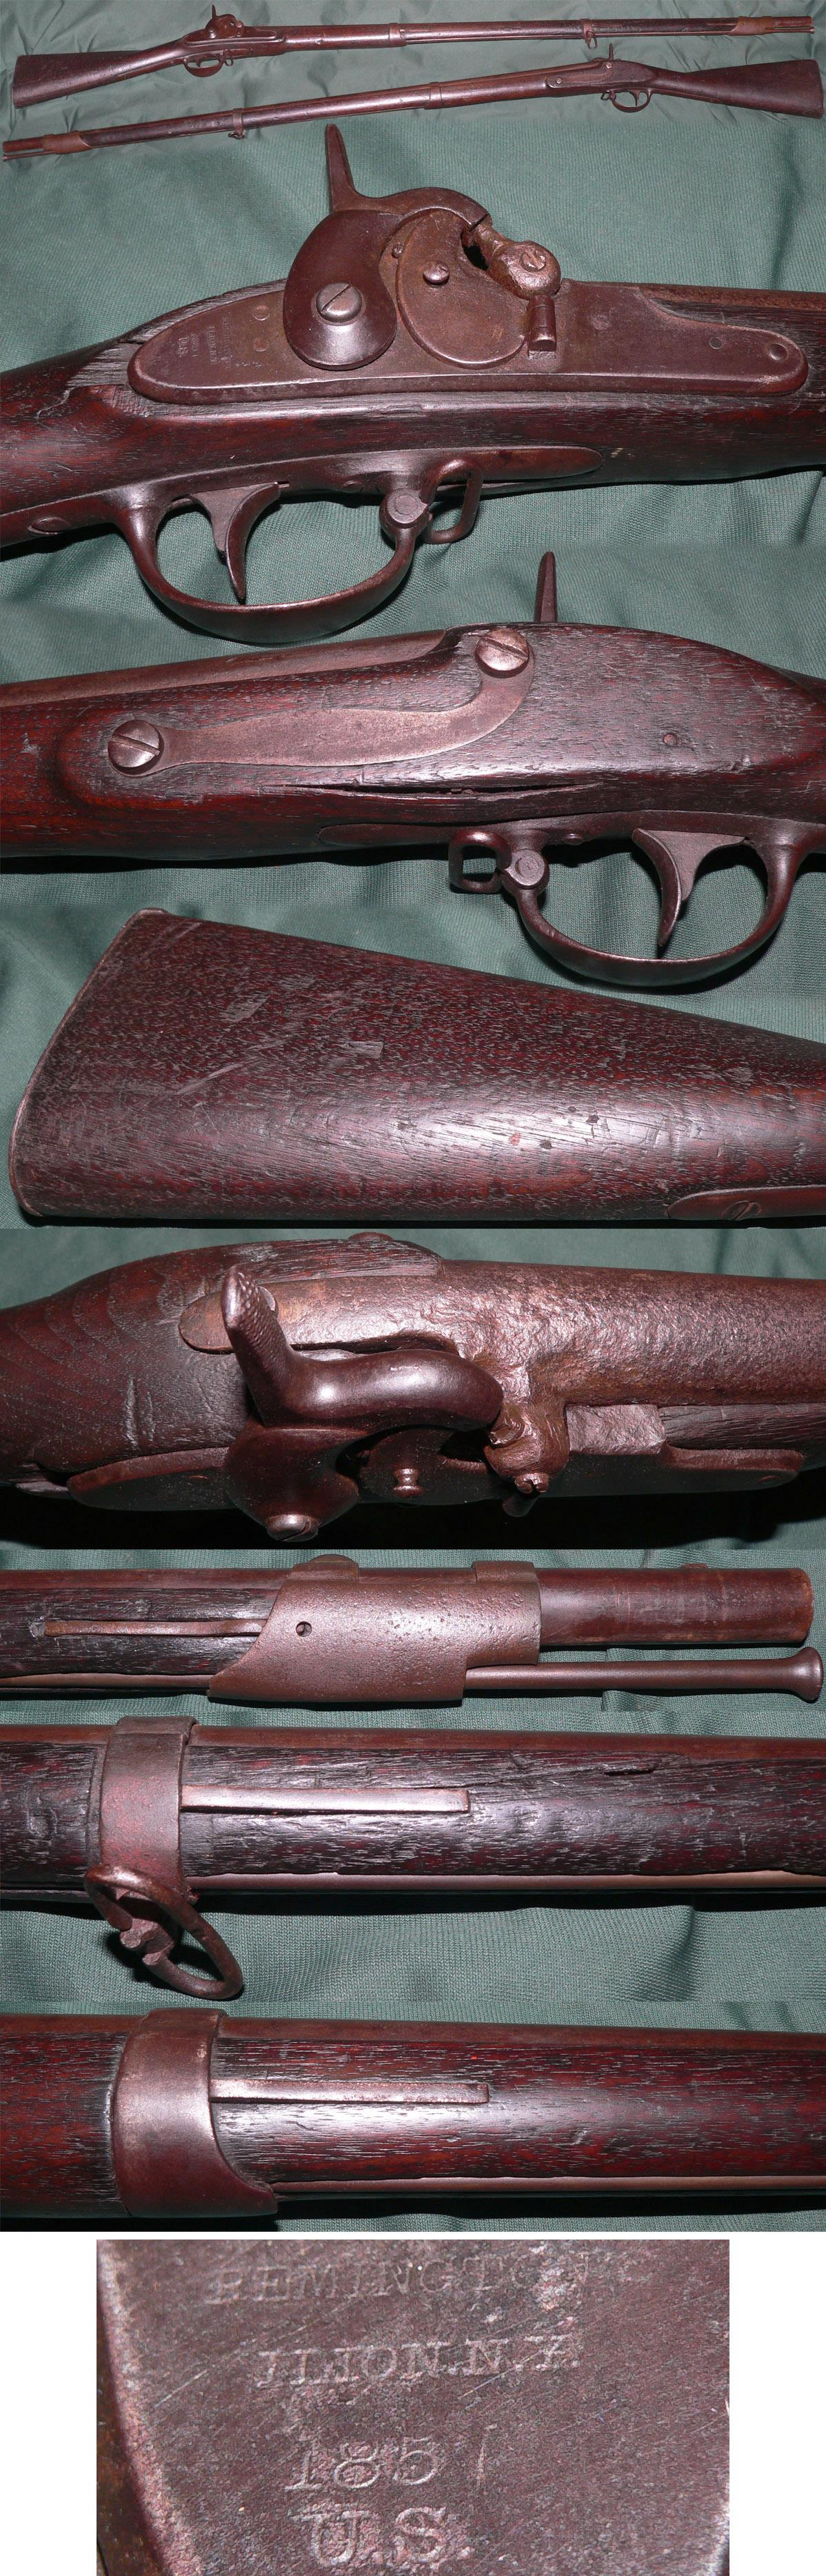 Remington Maynard conversion percussion musket  Guns > Rifles > Muzzleloading Pre-1899 Rifles (perc)